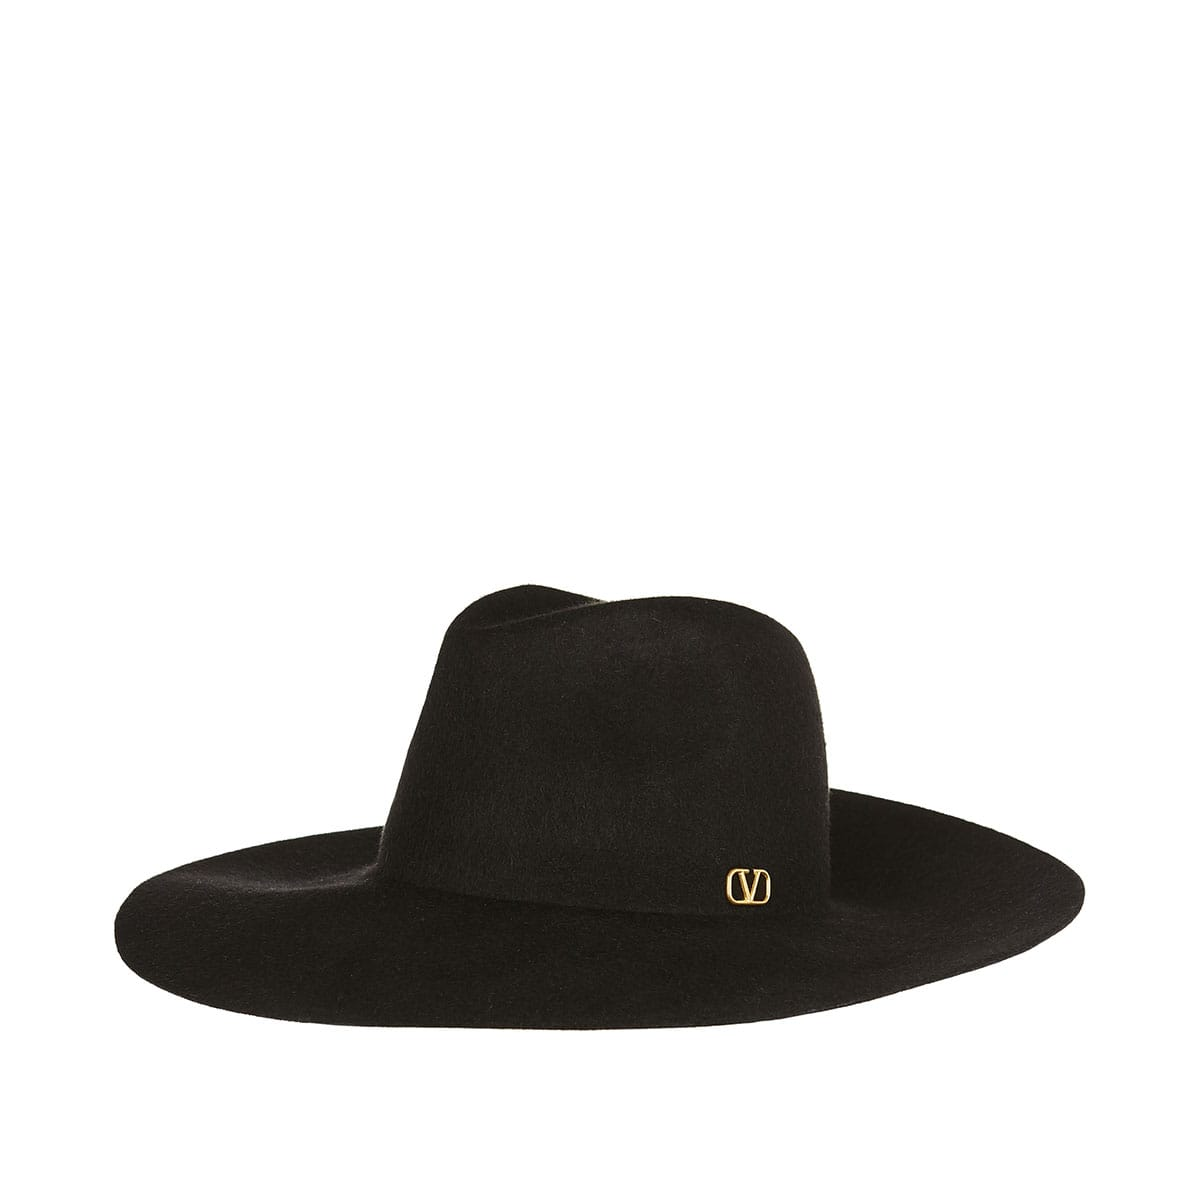 V-logo wide-brim hat